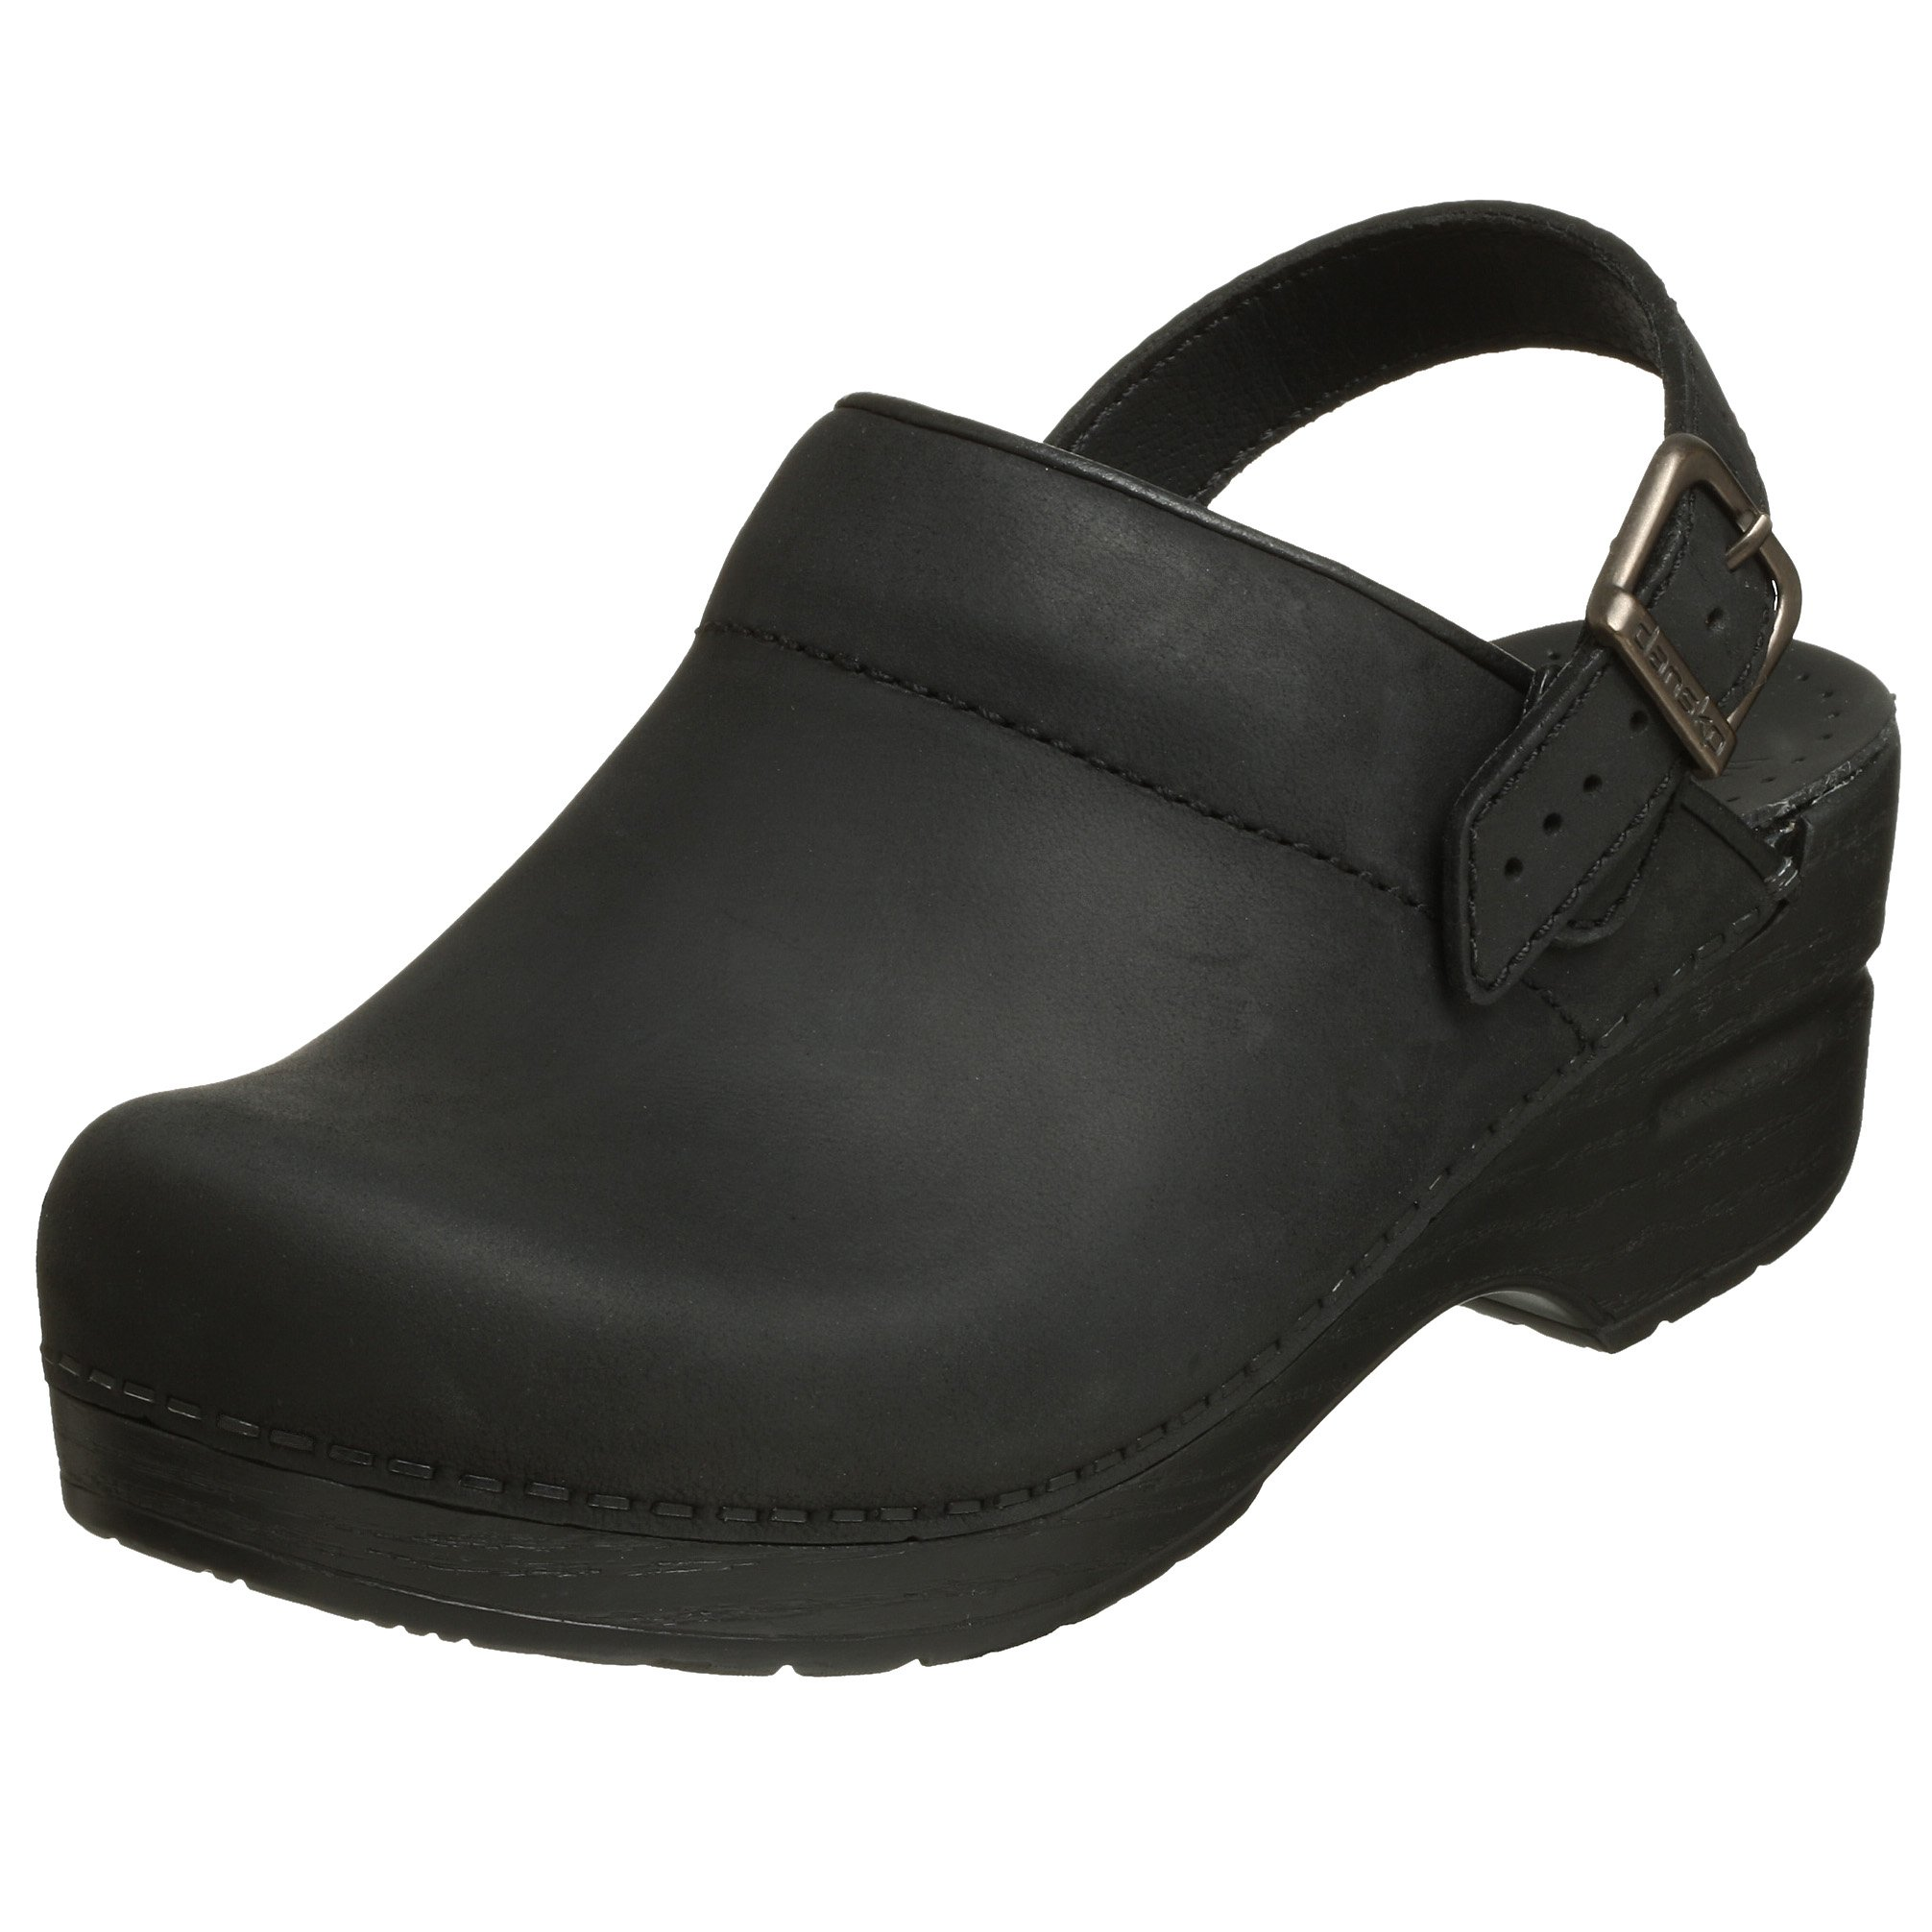 Dansko Women's Ingrid Oiled Leather Clog,Black,38 EU / 7.5-8 B(M) US